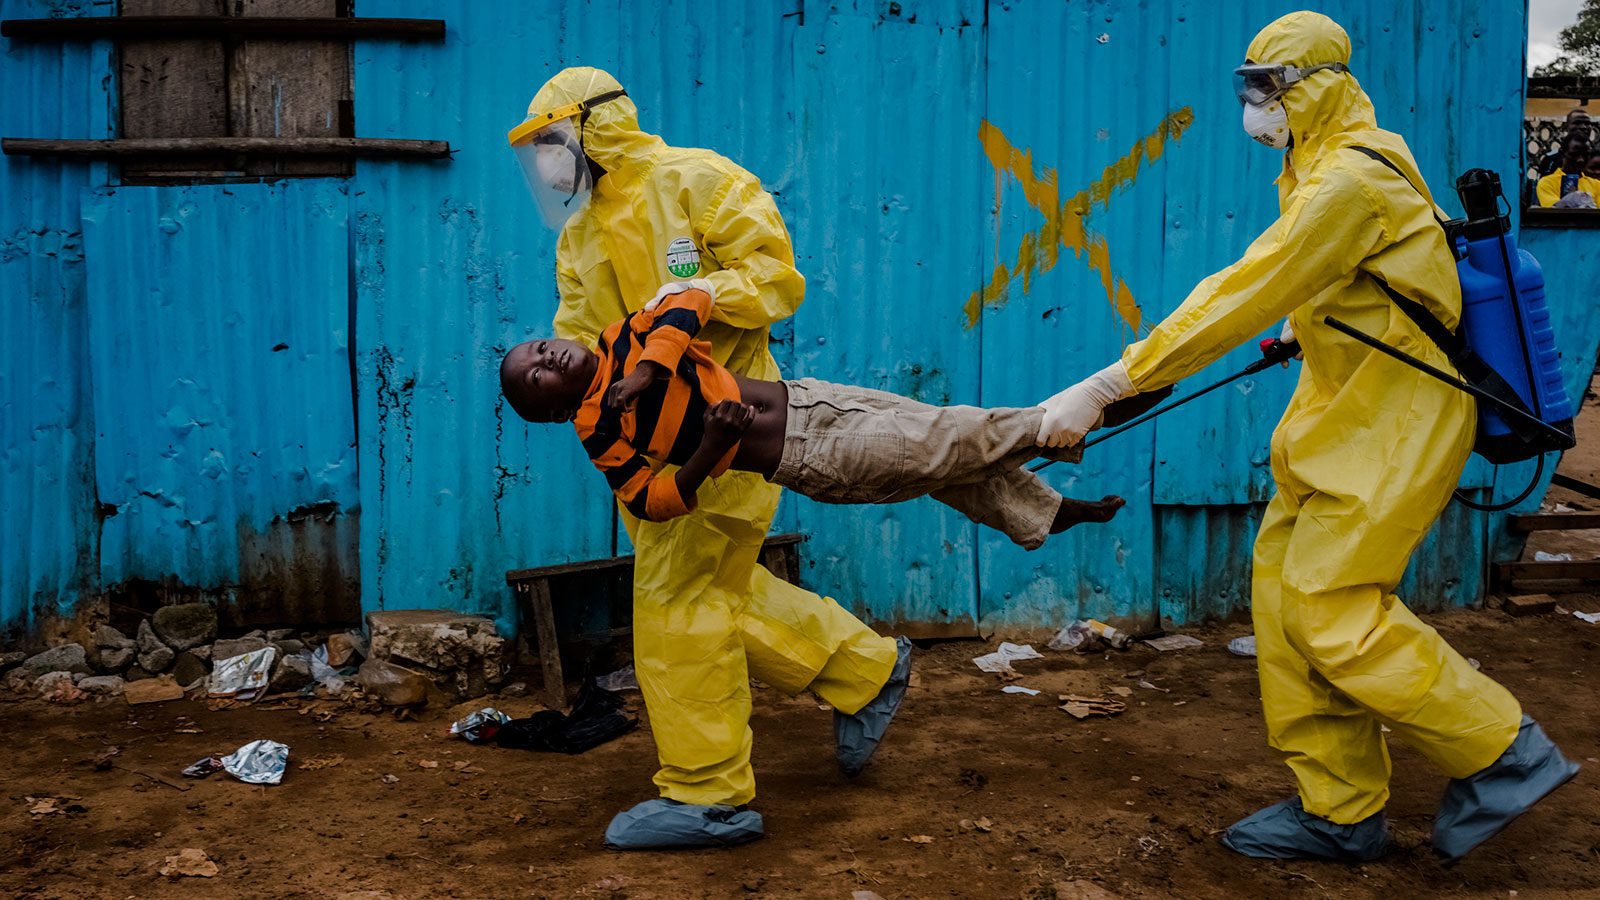 James Dorbor, 8, suspected to have Ebola, is rushed by medical staff wearing protective clothing into the JFK Ebola treatment center in Monrovia, Liberia. James passed away shortly after being admitted that same day. September 05, 2014  © Daniel Berehulak for The New York Times